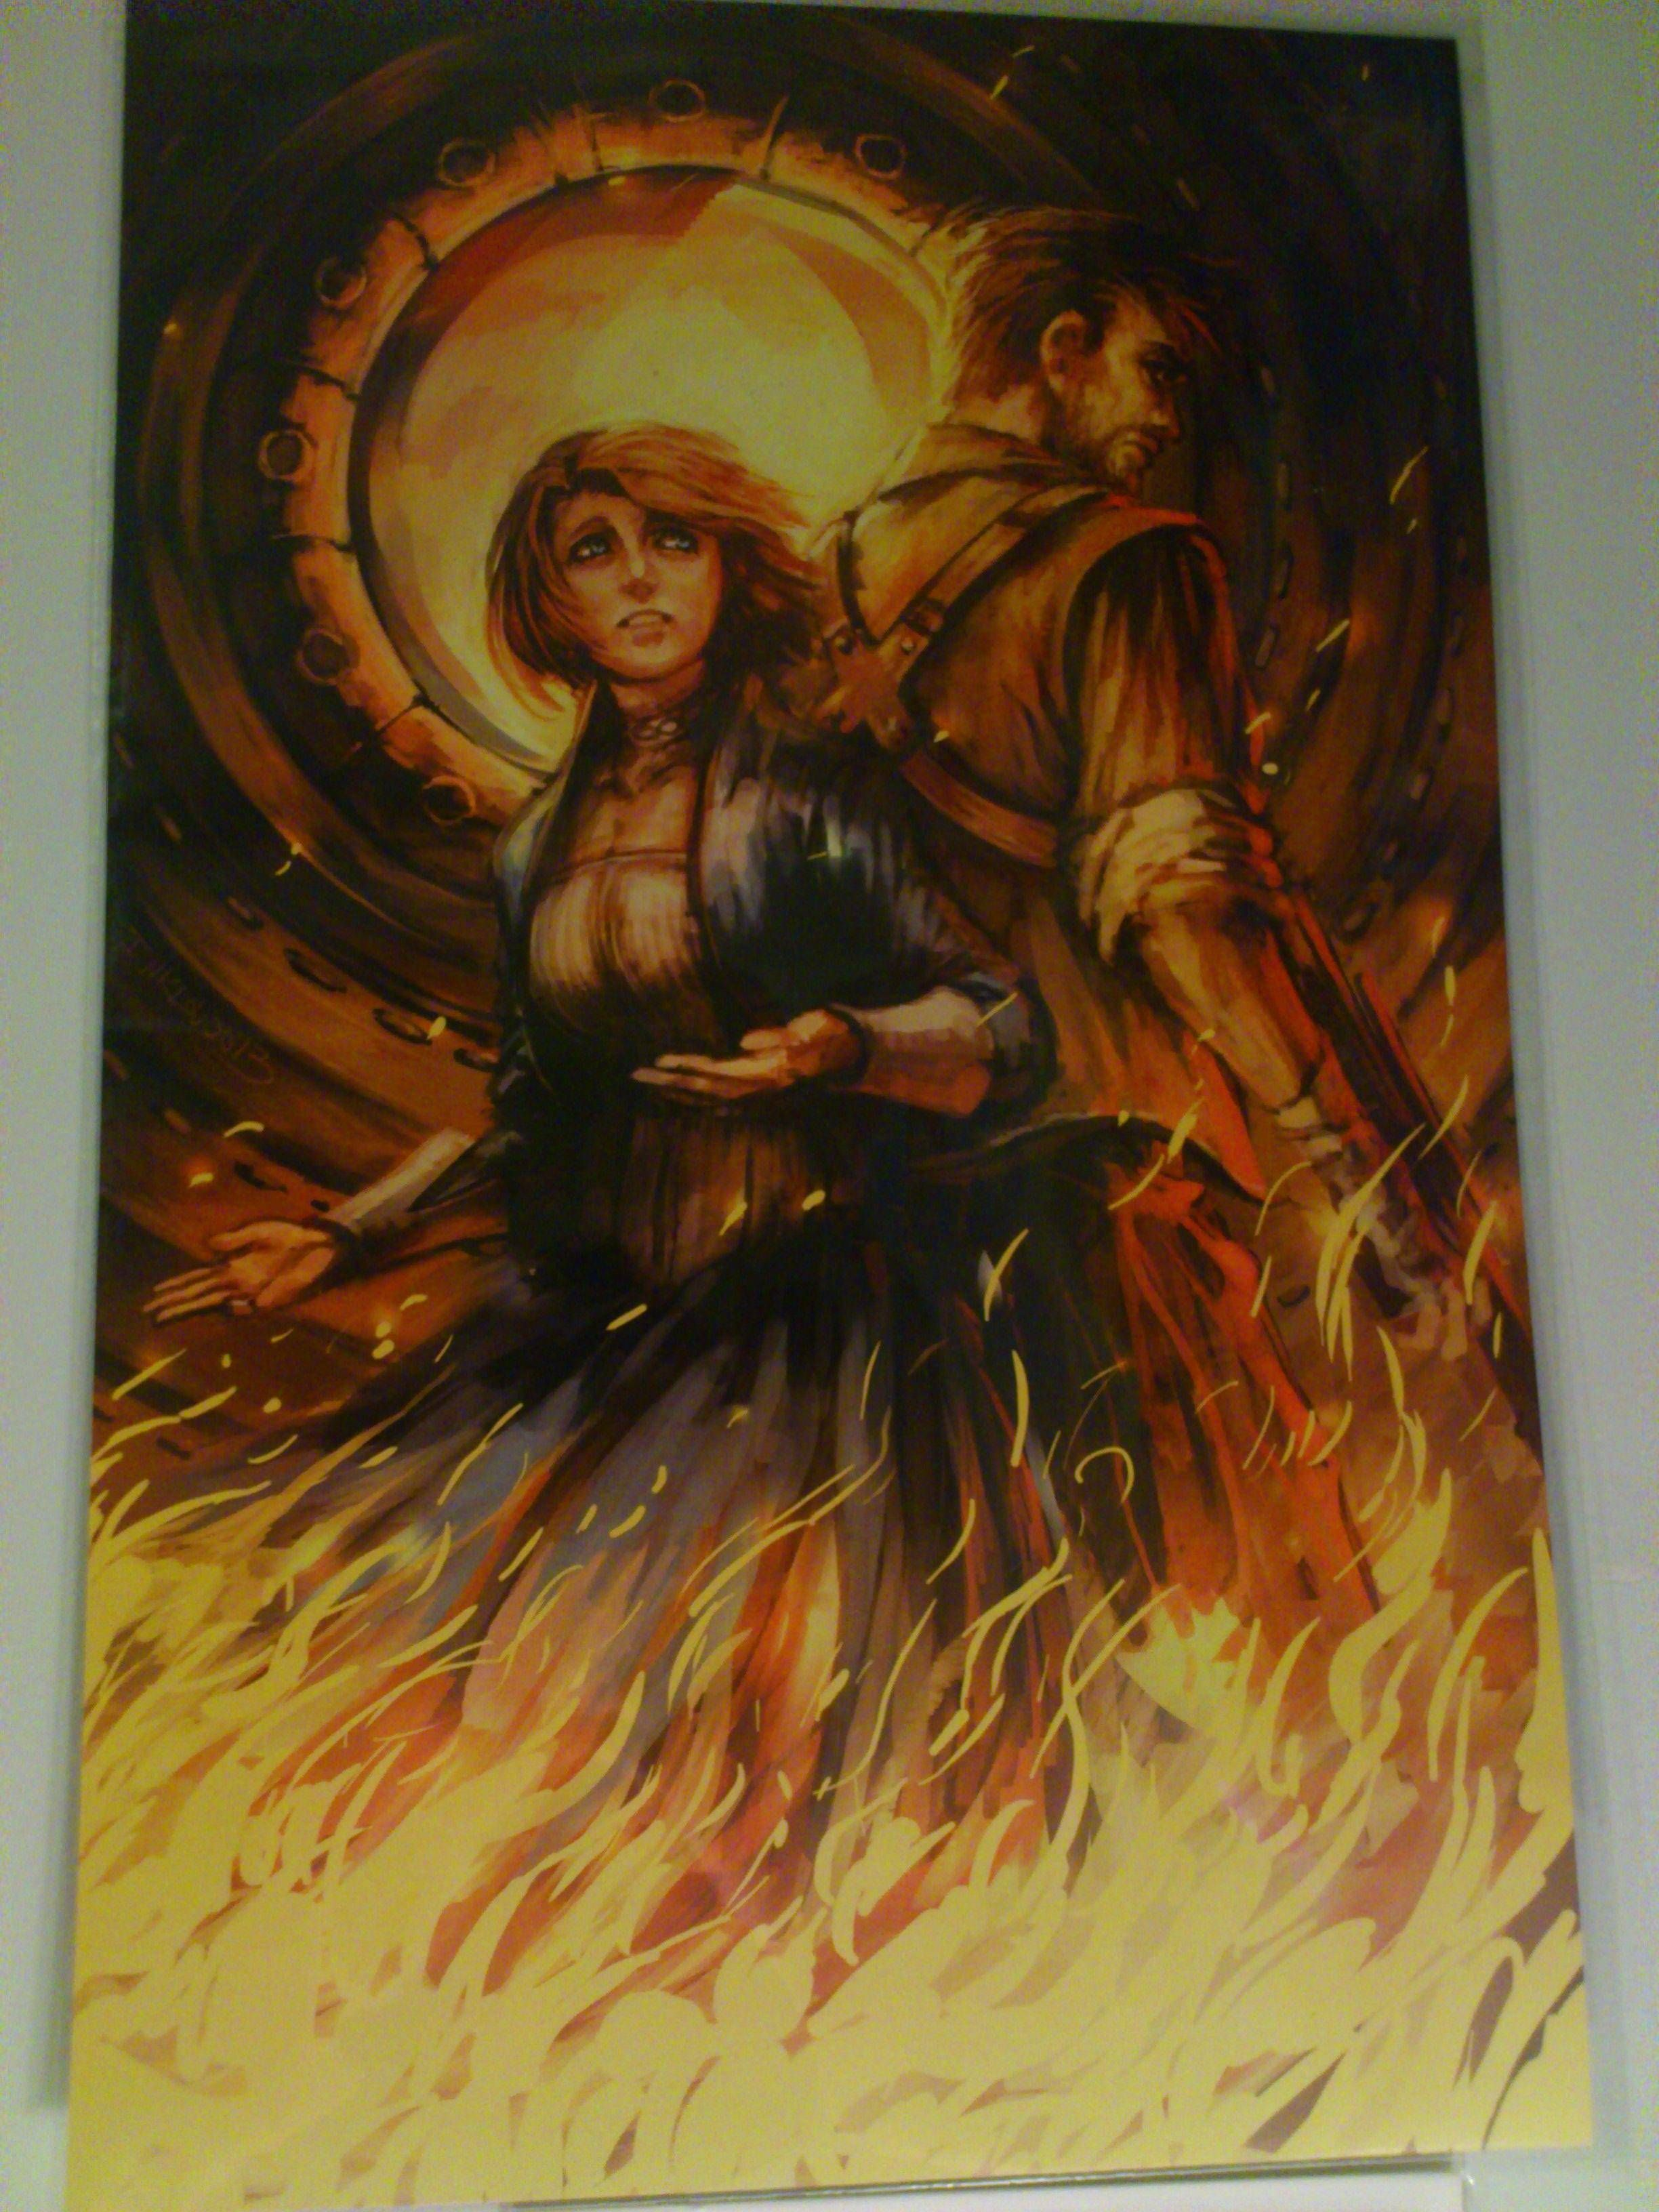 Bioshock infinite poster via reddit user ezzytiu video game art bioshock infinite poster via reddit user ezzytiu voltagebd Image collections